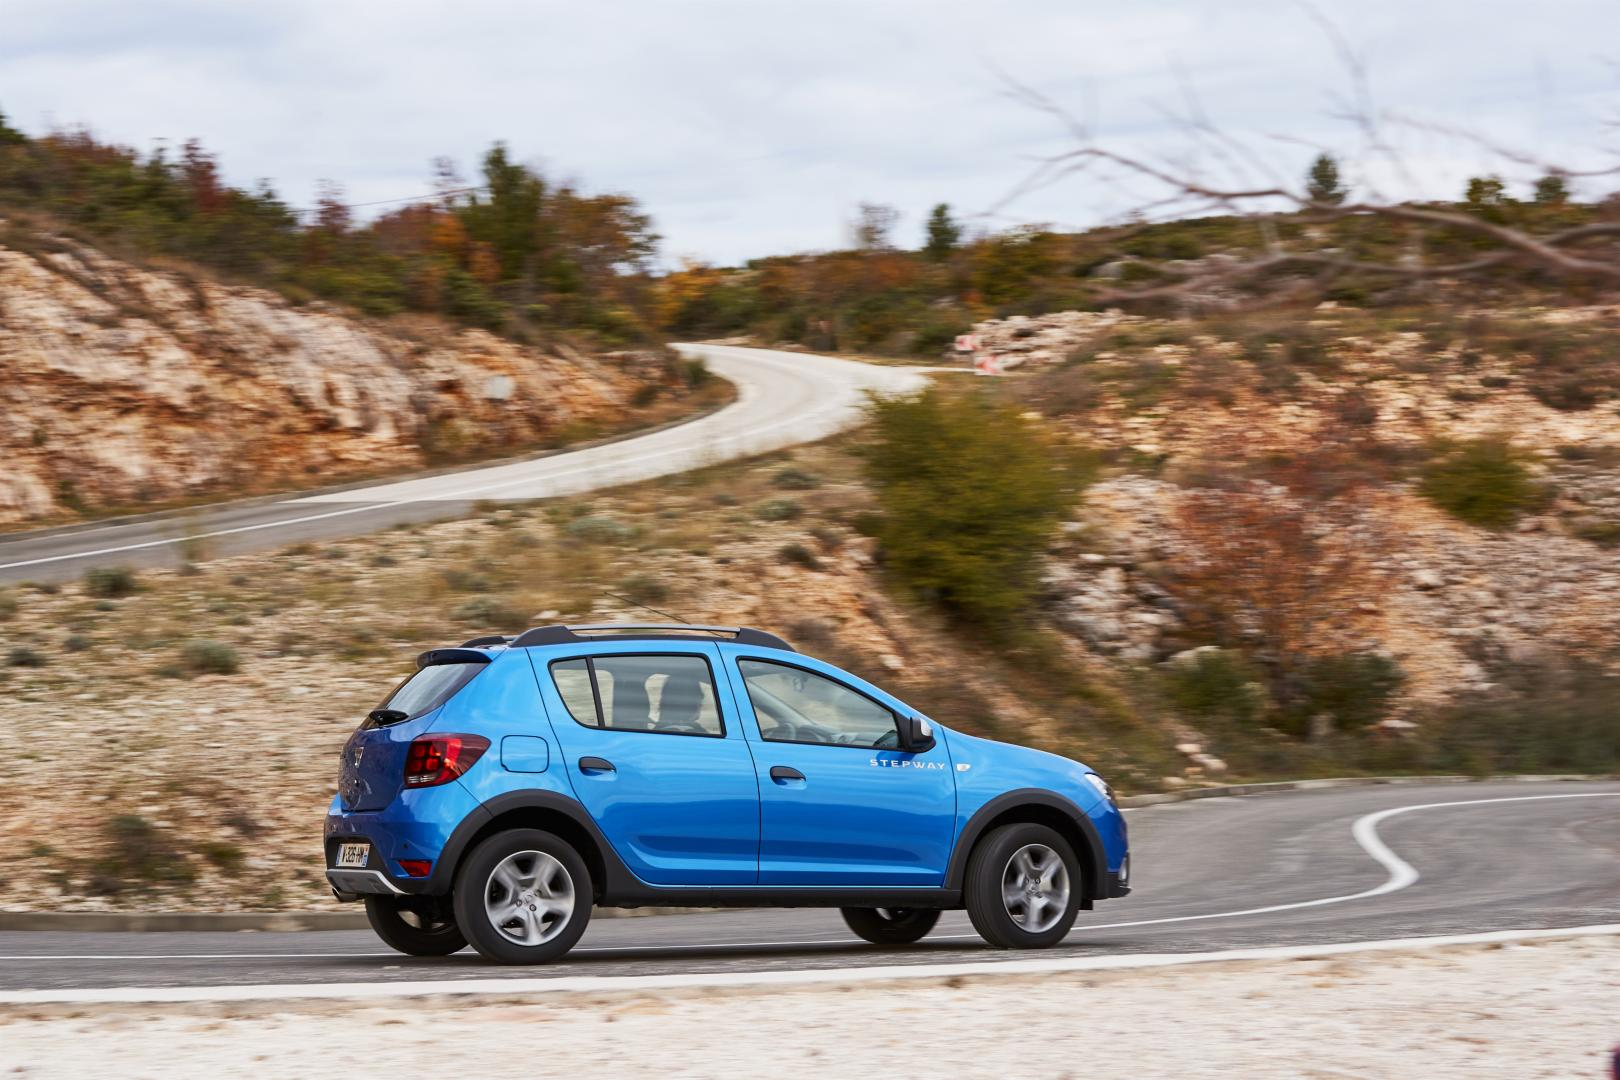 dacia sandero stepway tce 90 laur ate autotest en specificaties. Black Bedroom Furniture Sets. Home Design Ideas